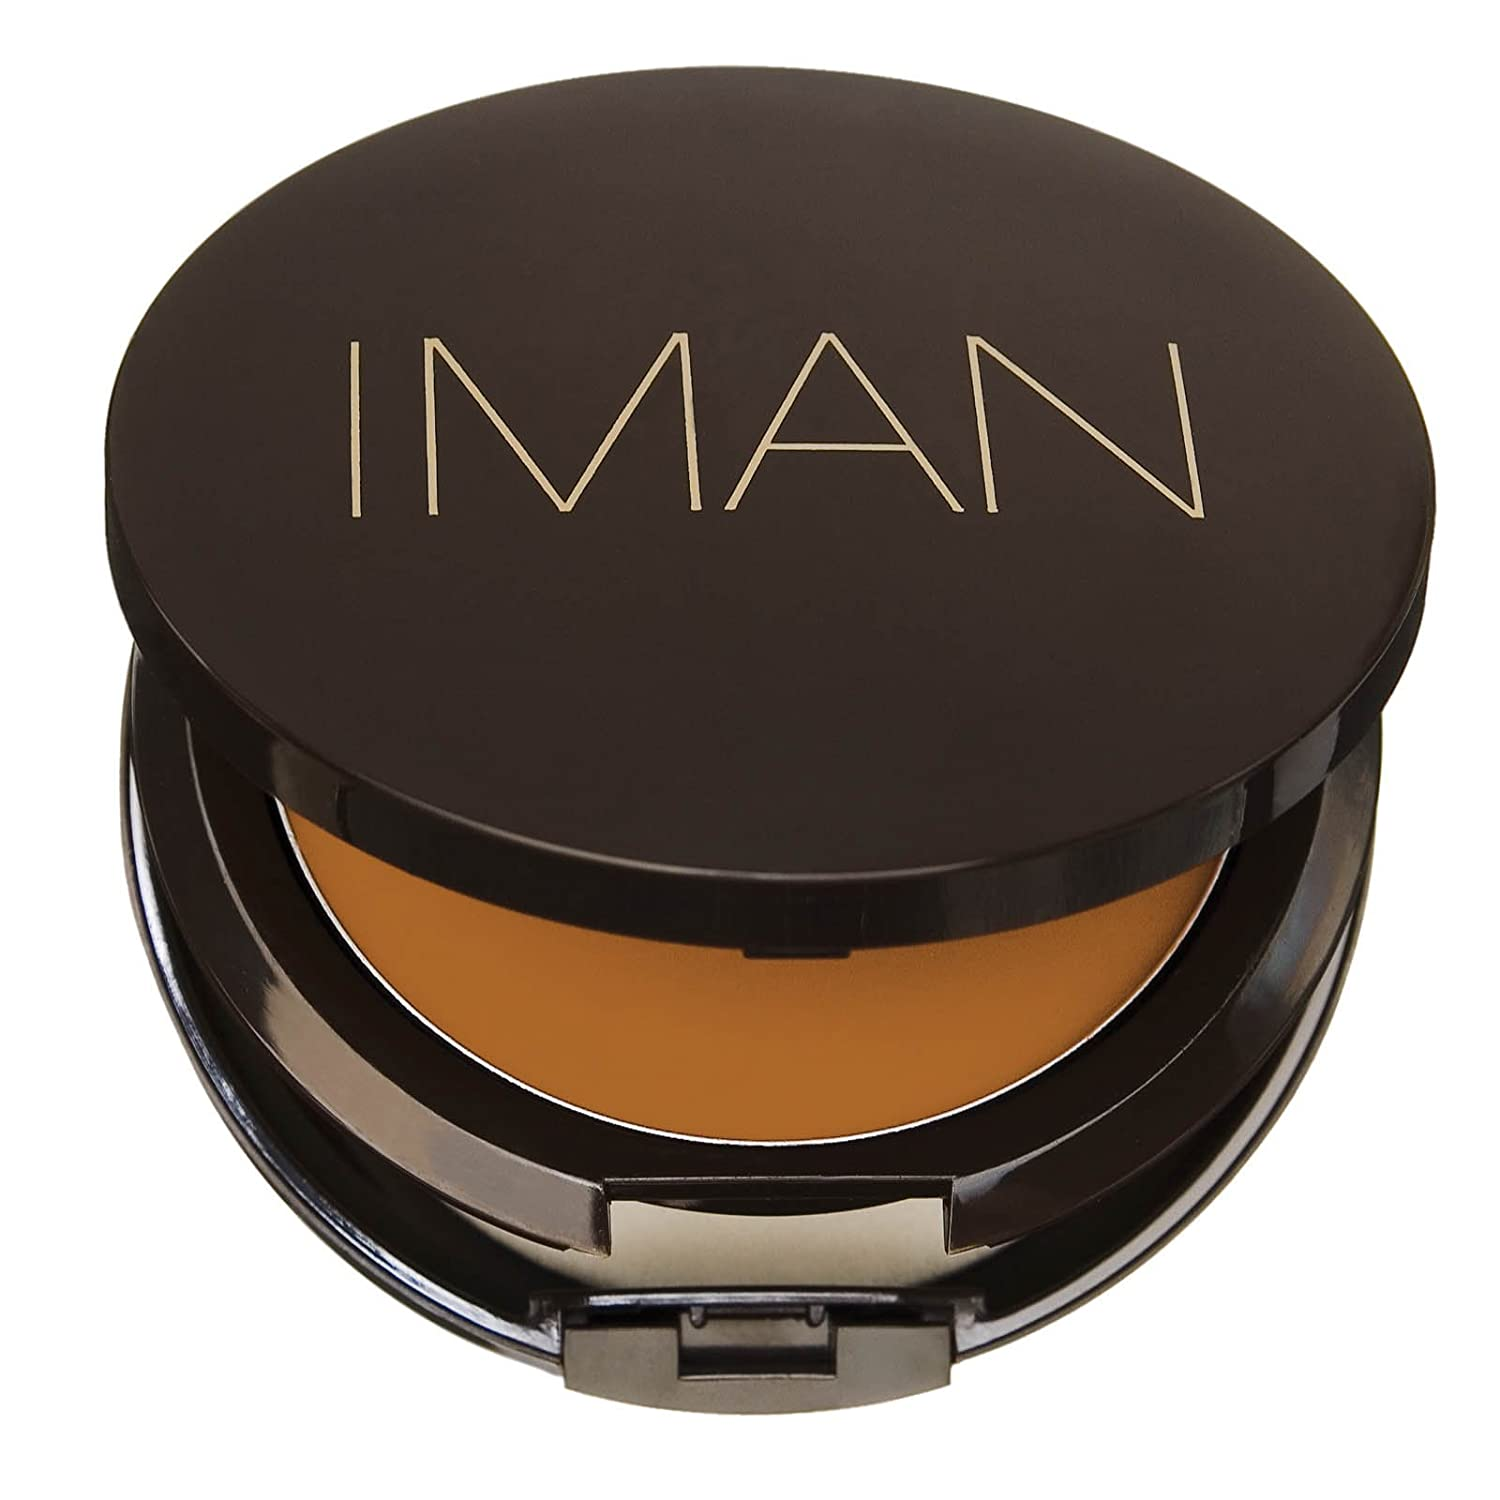 IMAN Cosmetics Second to None Cream to Powder Foundation, Earth 1, 0.35 Ounce 00127